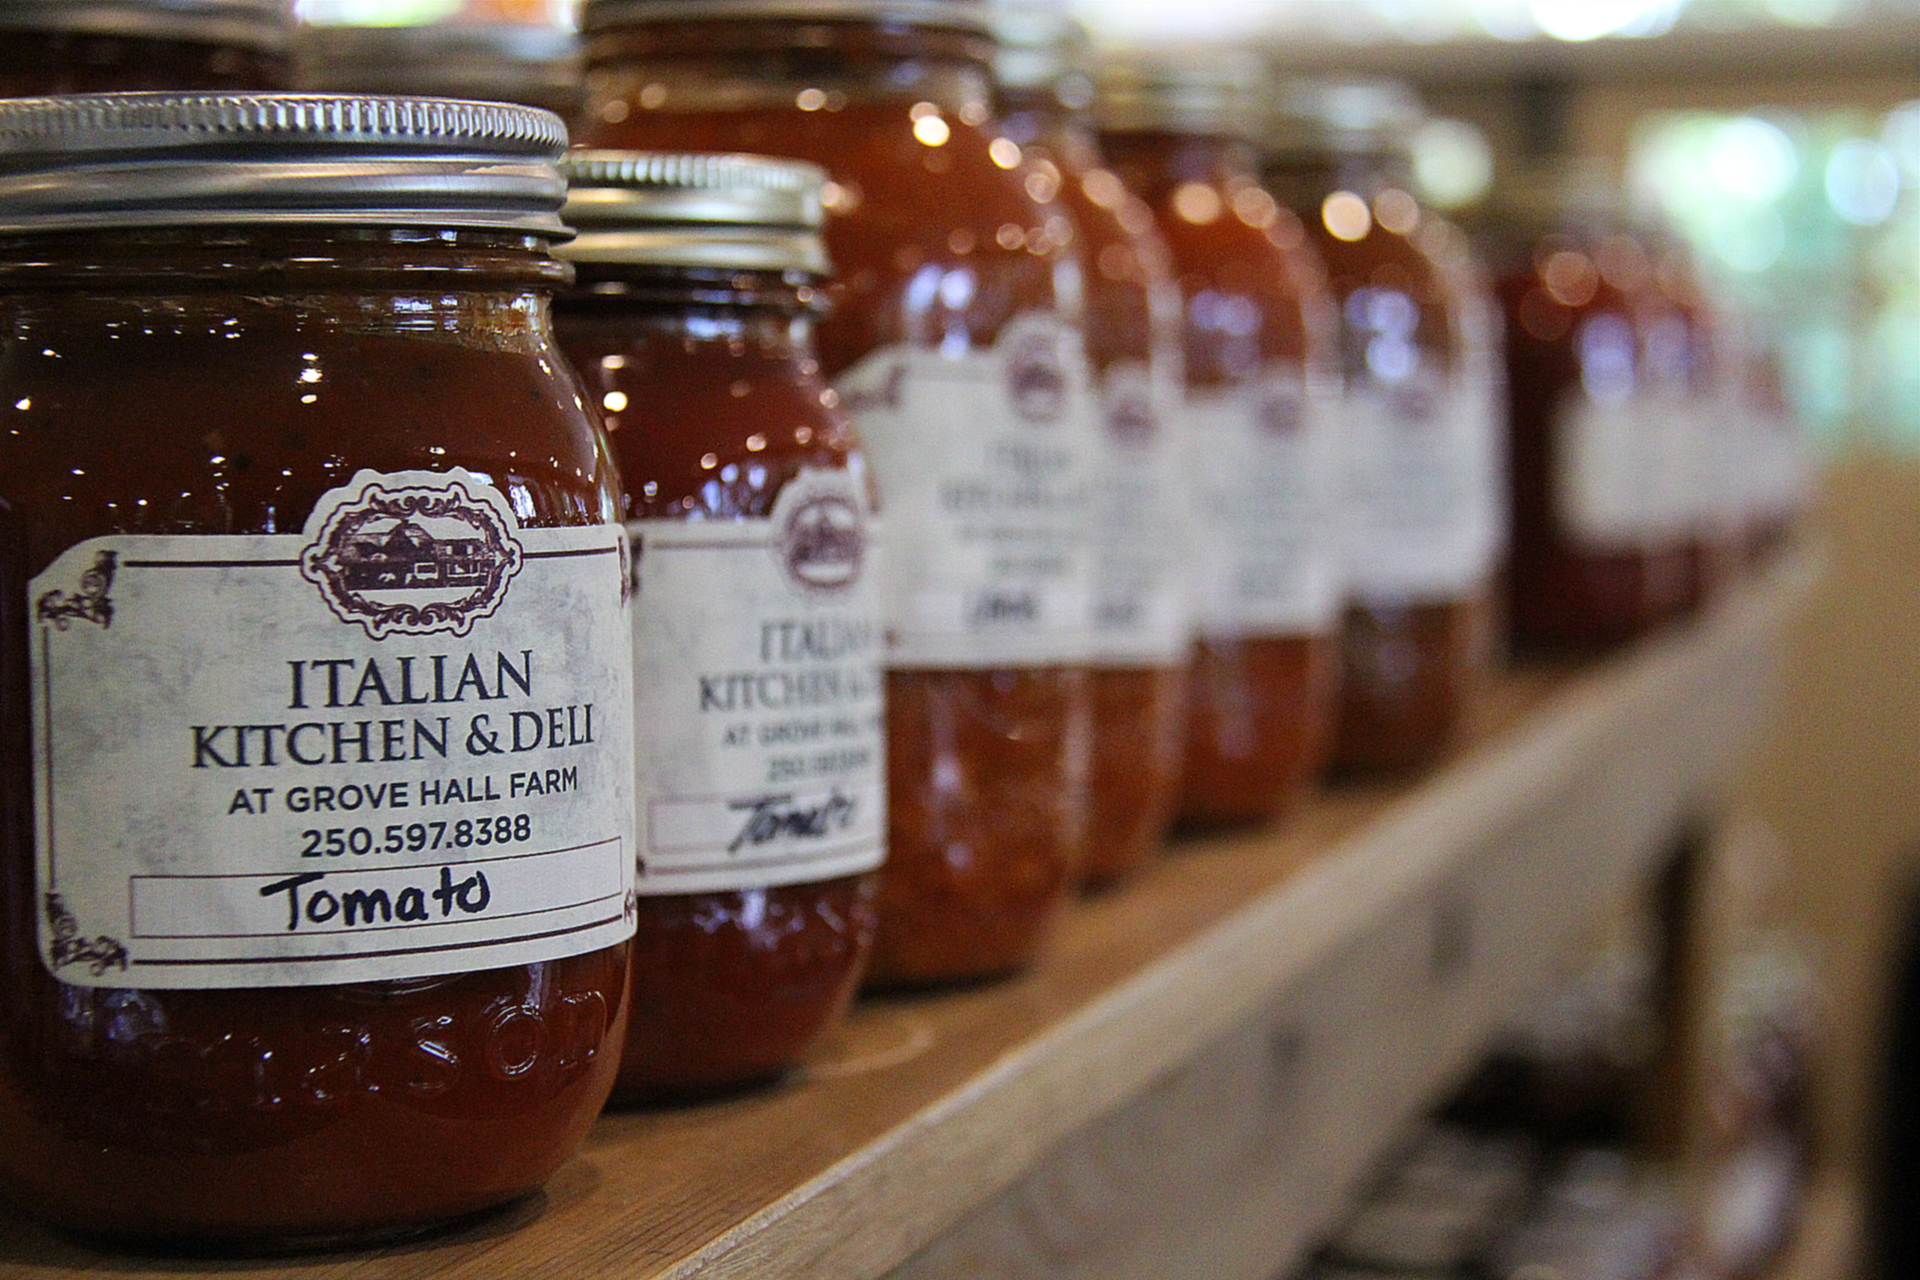 About - Find out about ourmission, our methods, and the family behind the Italian Kitchen & Deli.